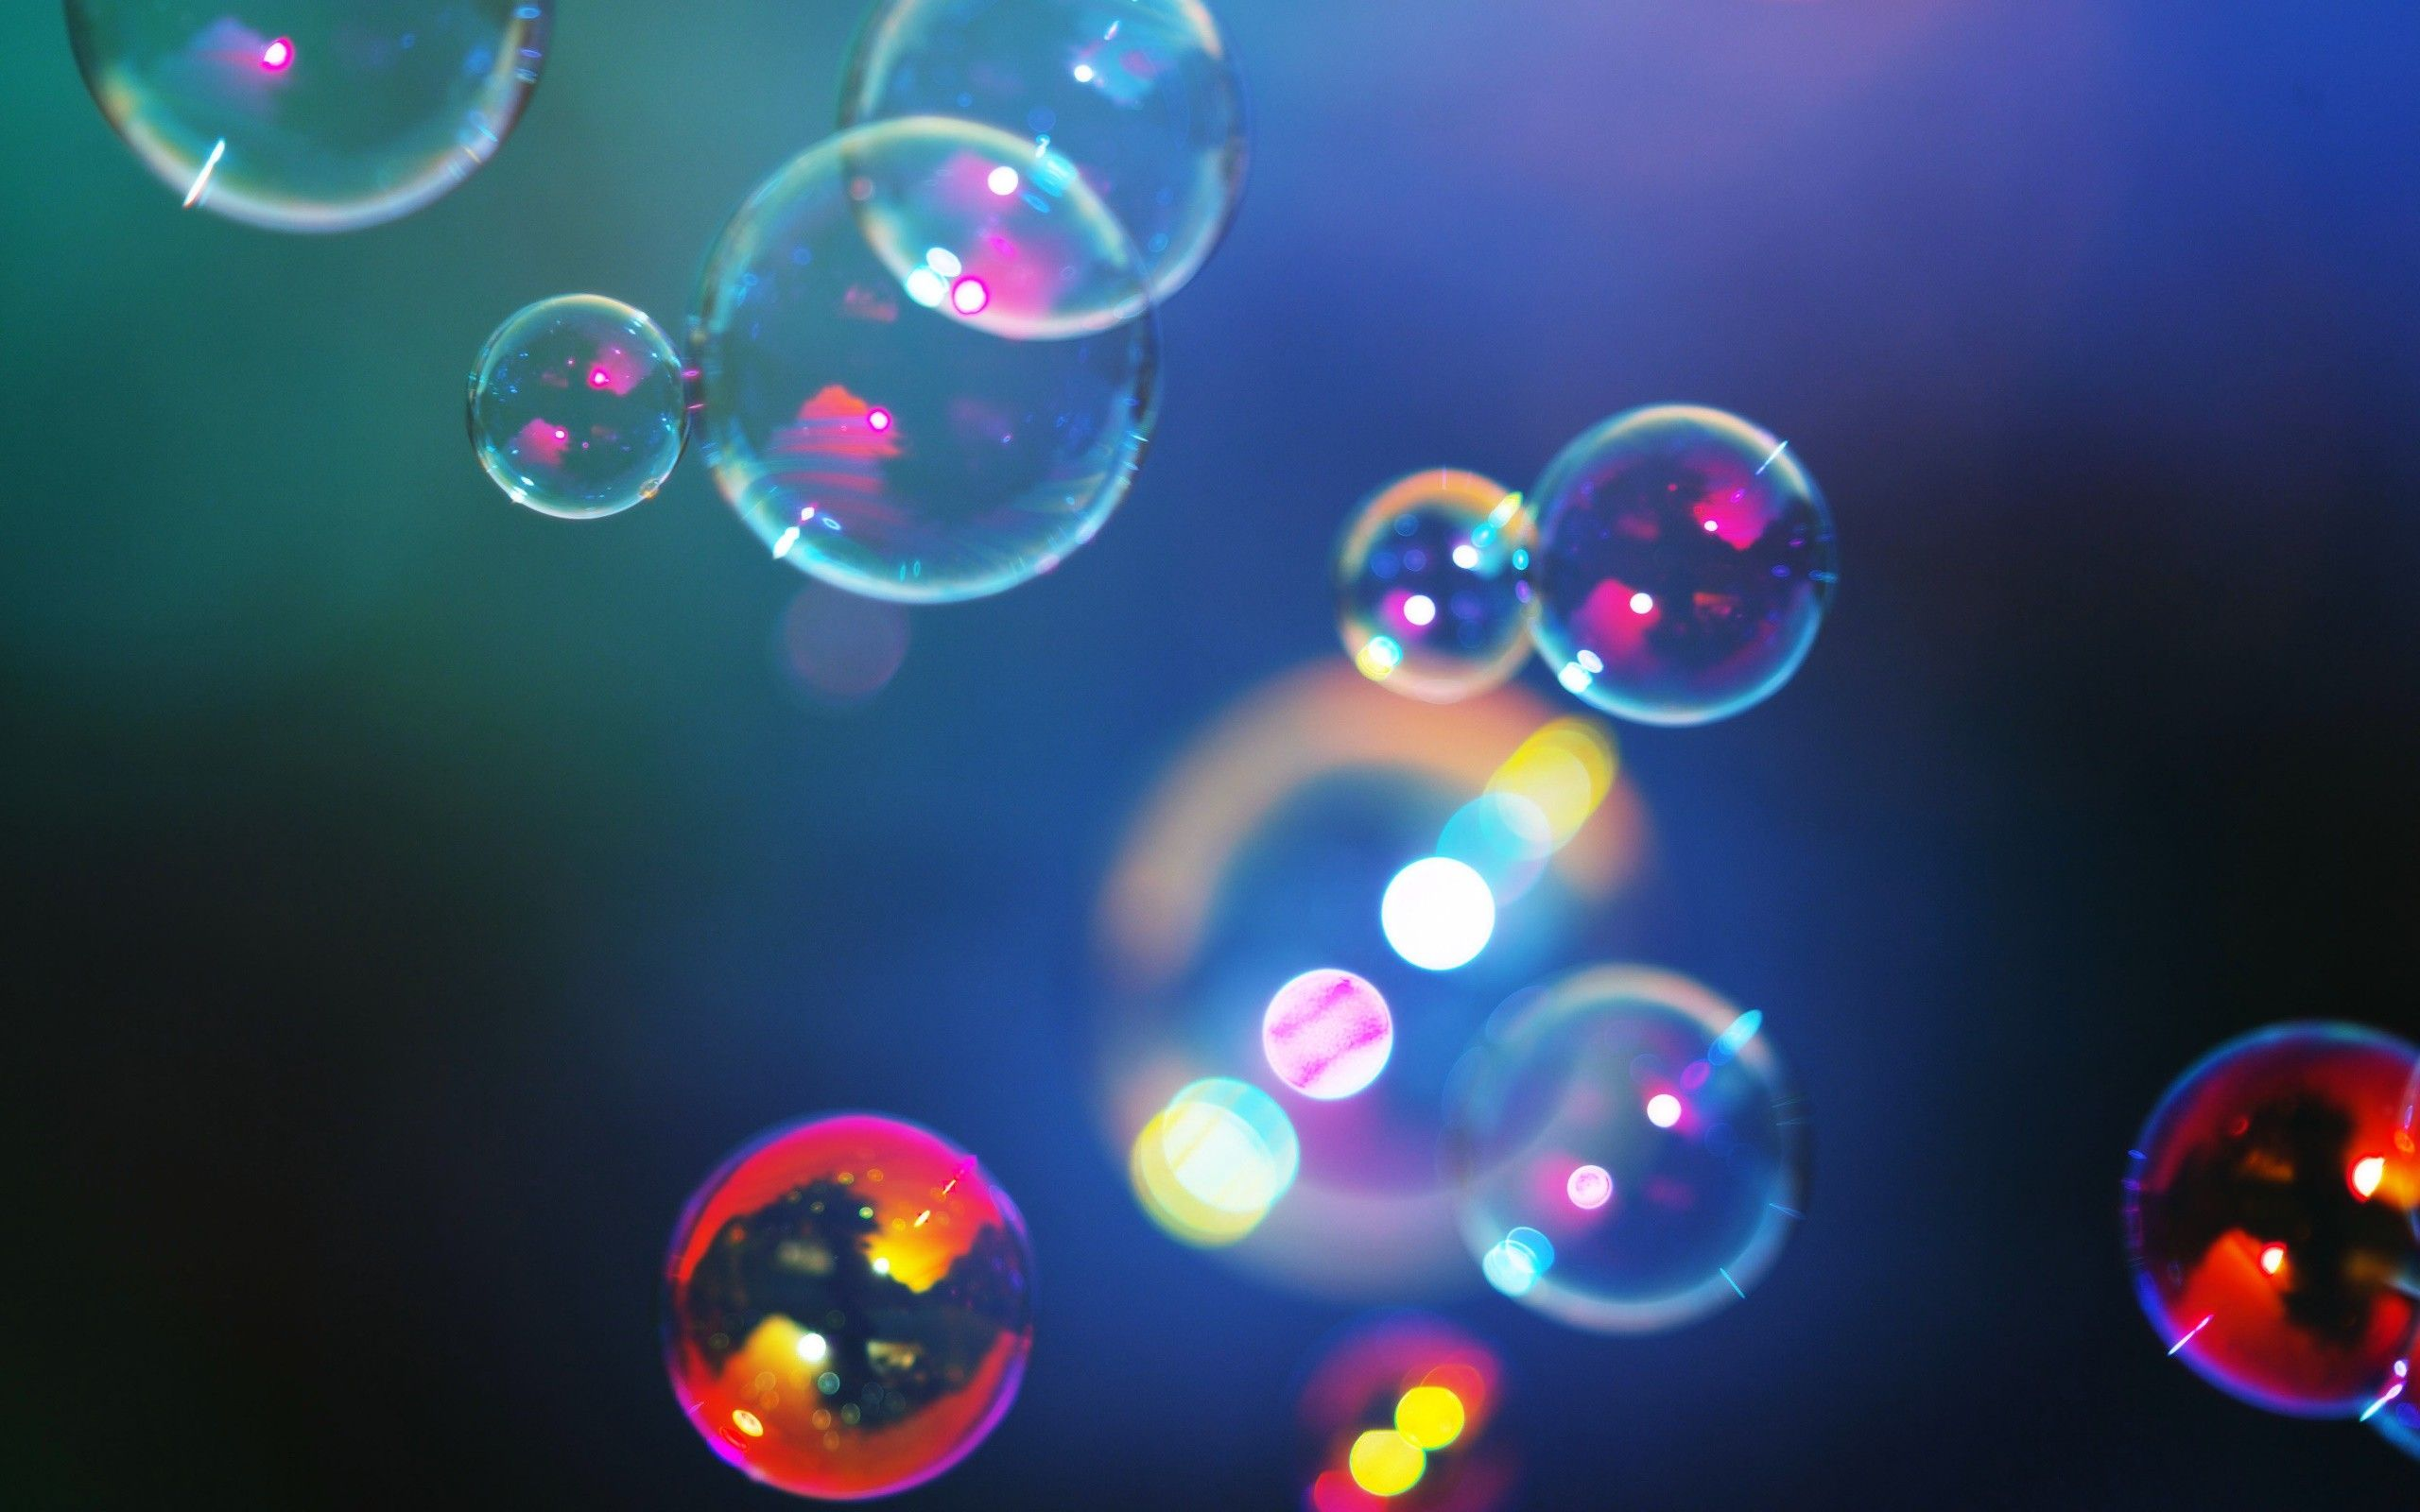 shimmering colorful bubbles and hd quality wallpaper for iphone ipad android samsung desktop pc mac